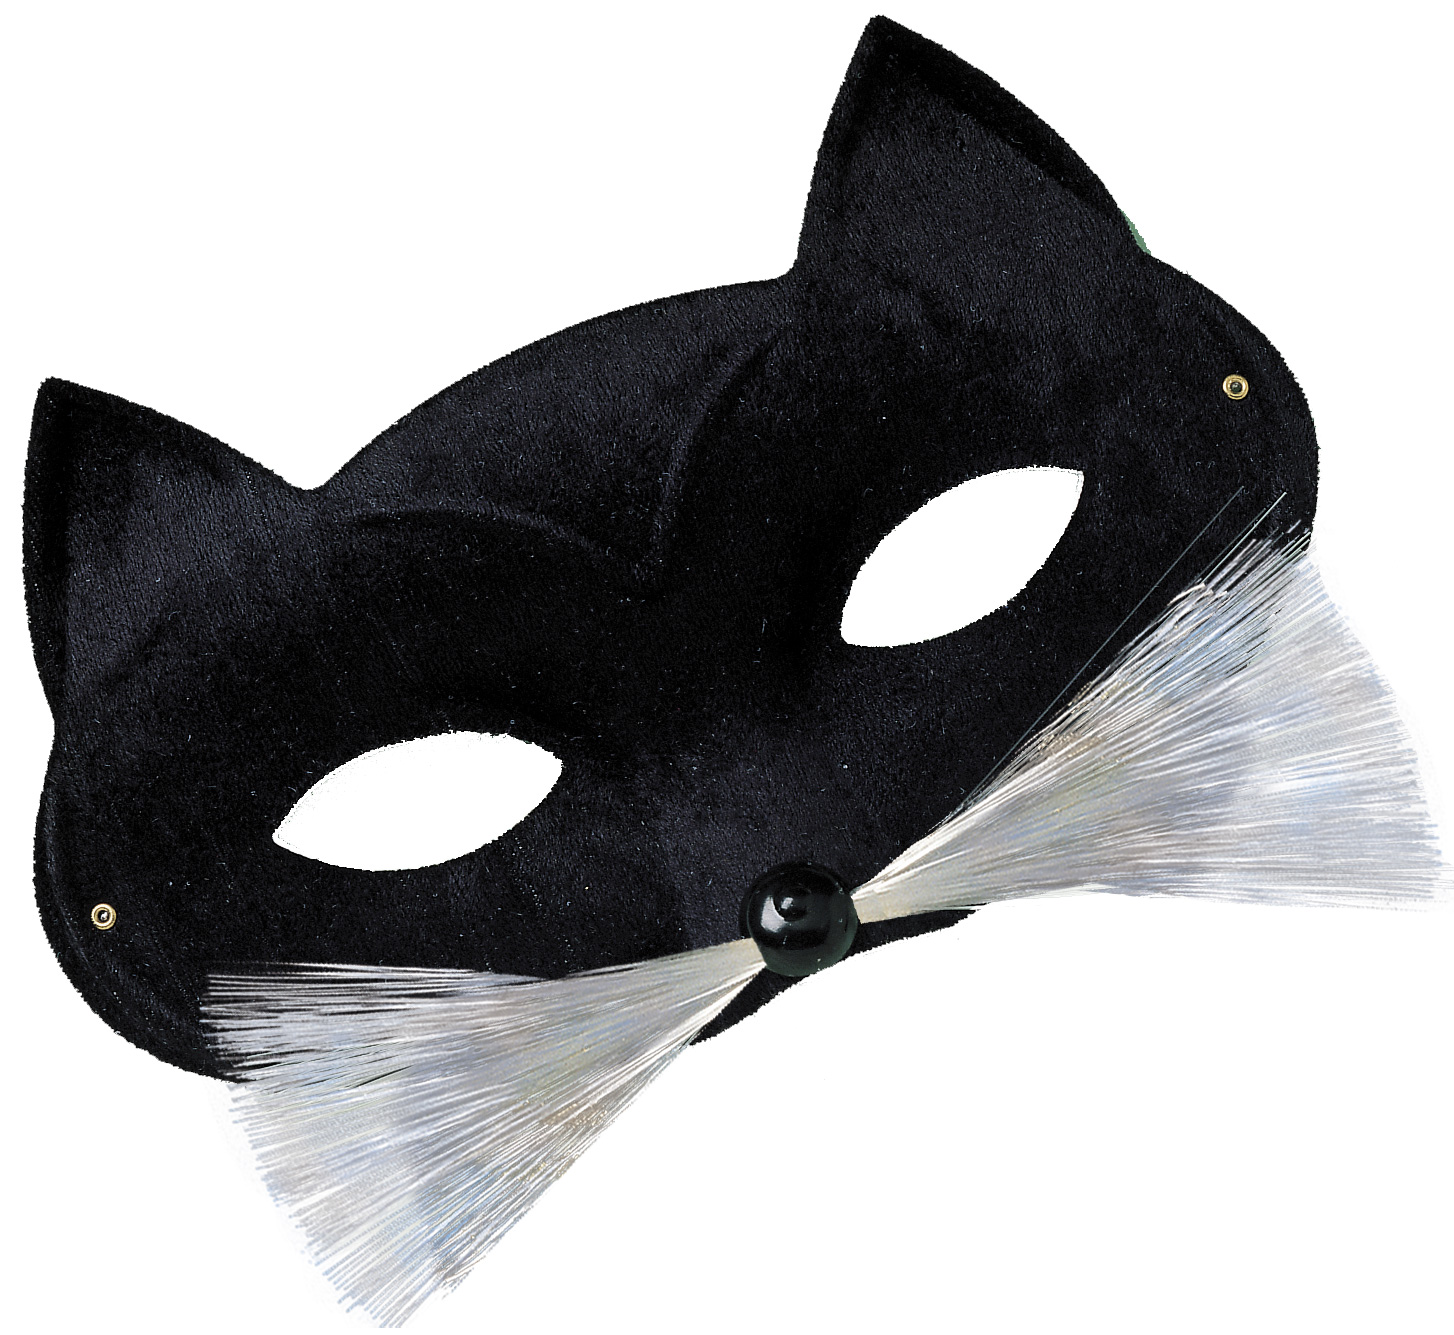 Black cat masquerade mask : Masks, and fancy dress costumes - Vegaoo